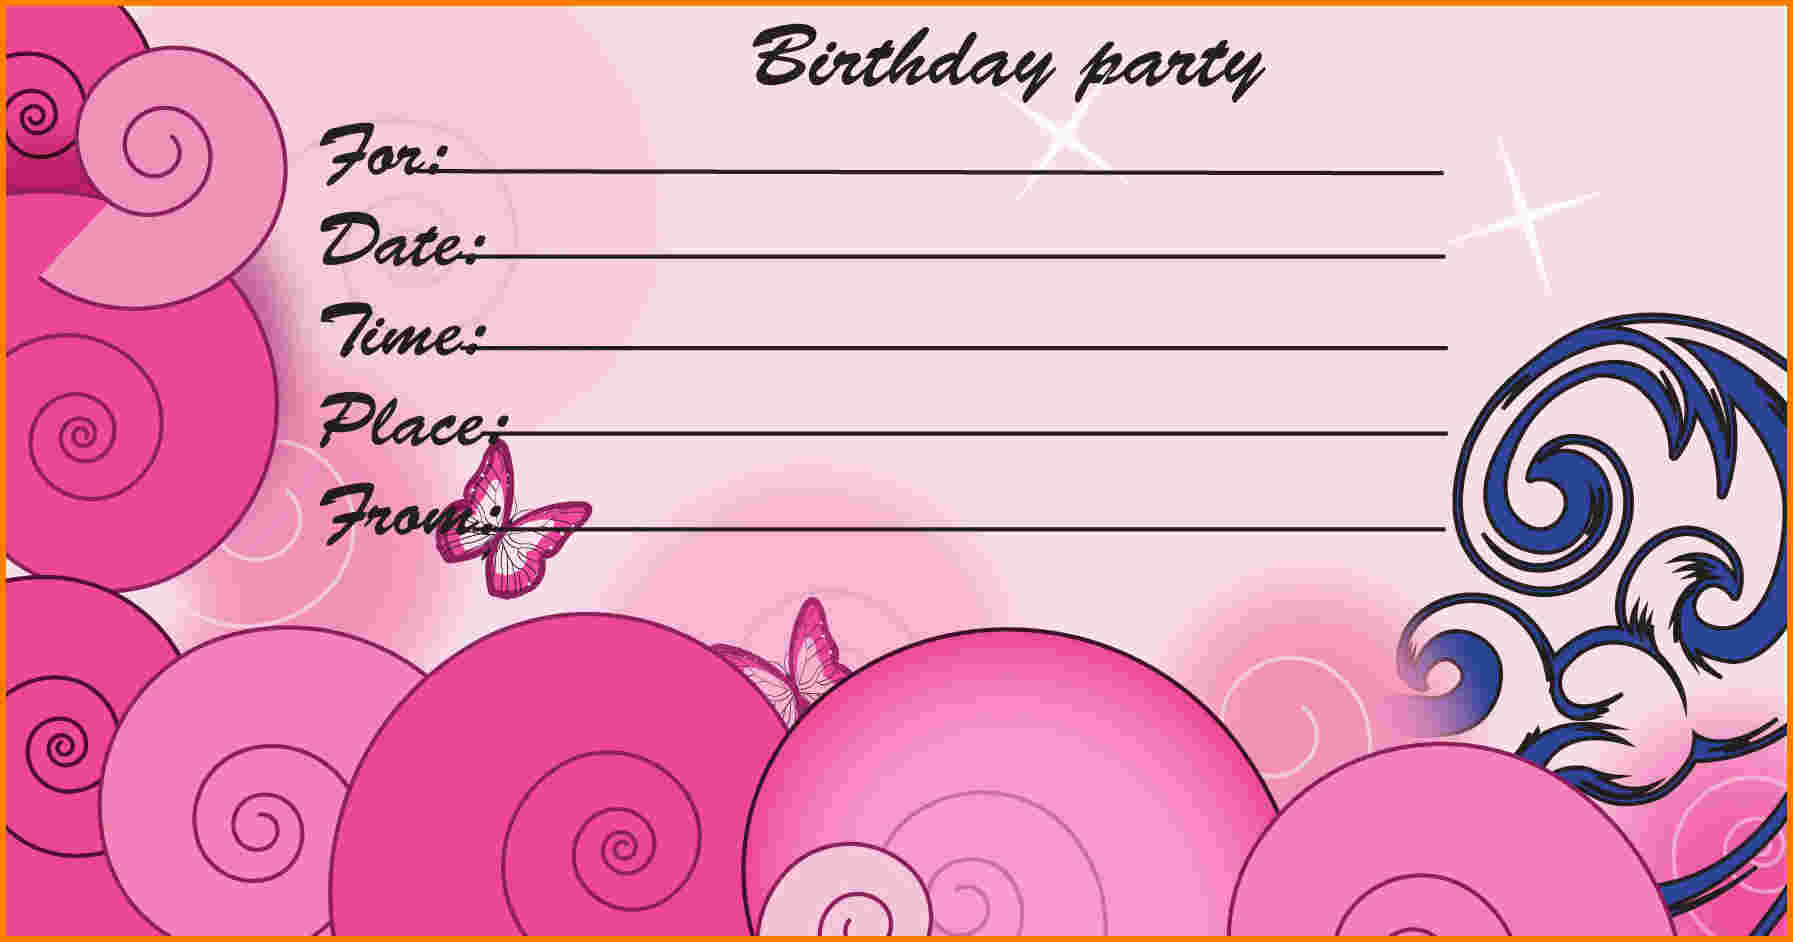 Free Printable Birthday Invitation Cards » Invitation Card Ideas